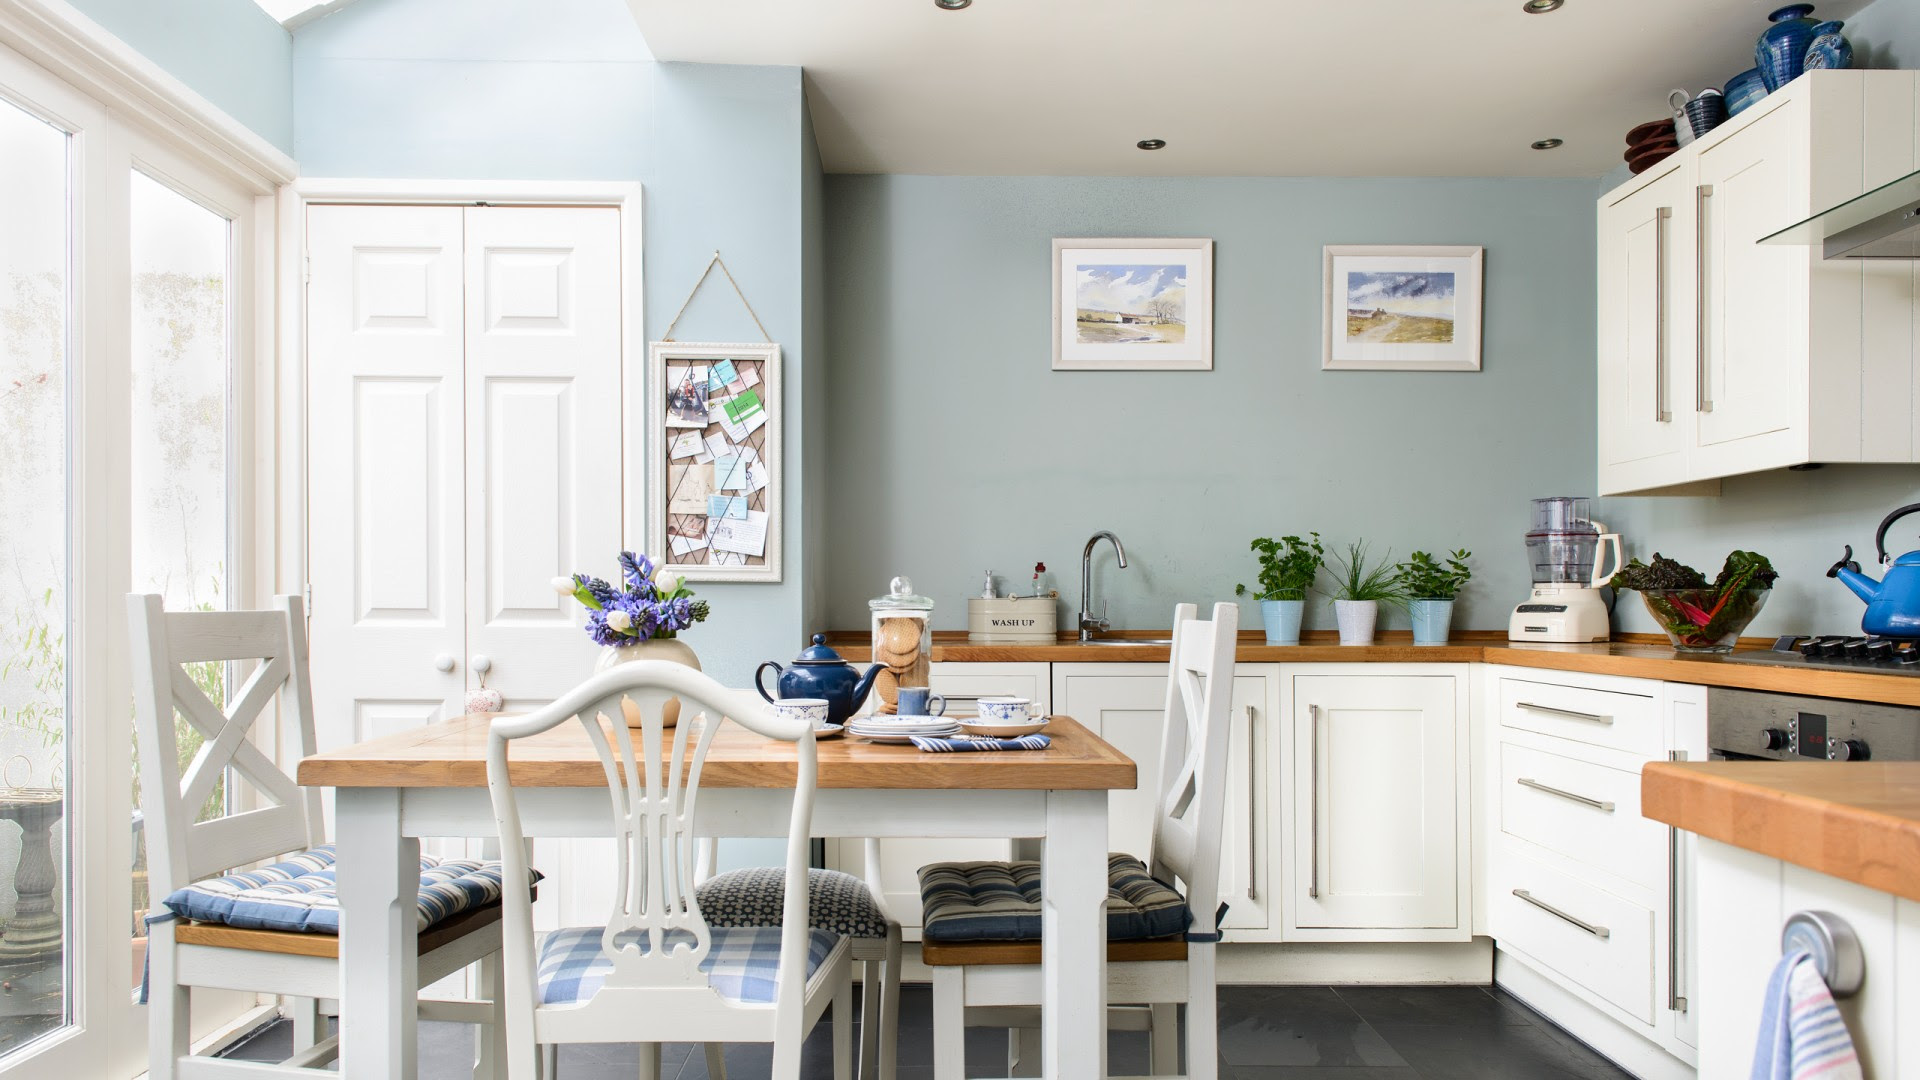 Duck Egg Blue Kitchen with White Cabinets - The Room Edit